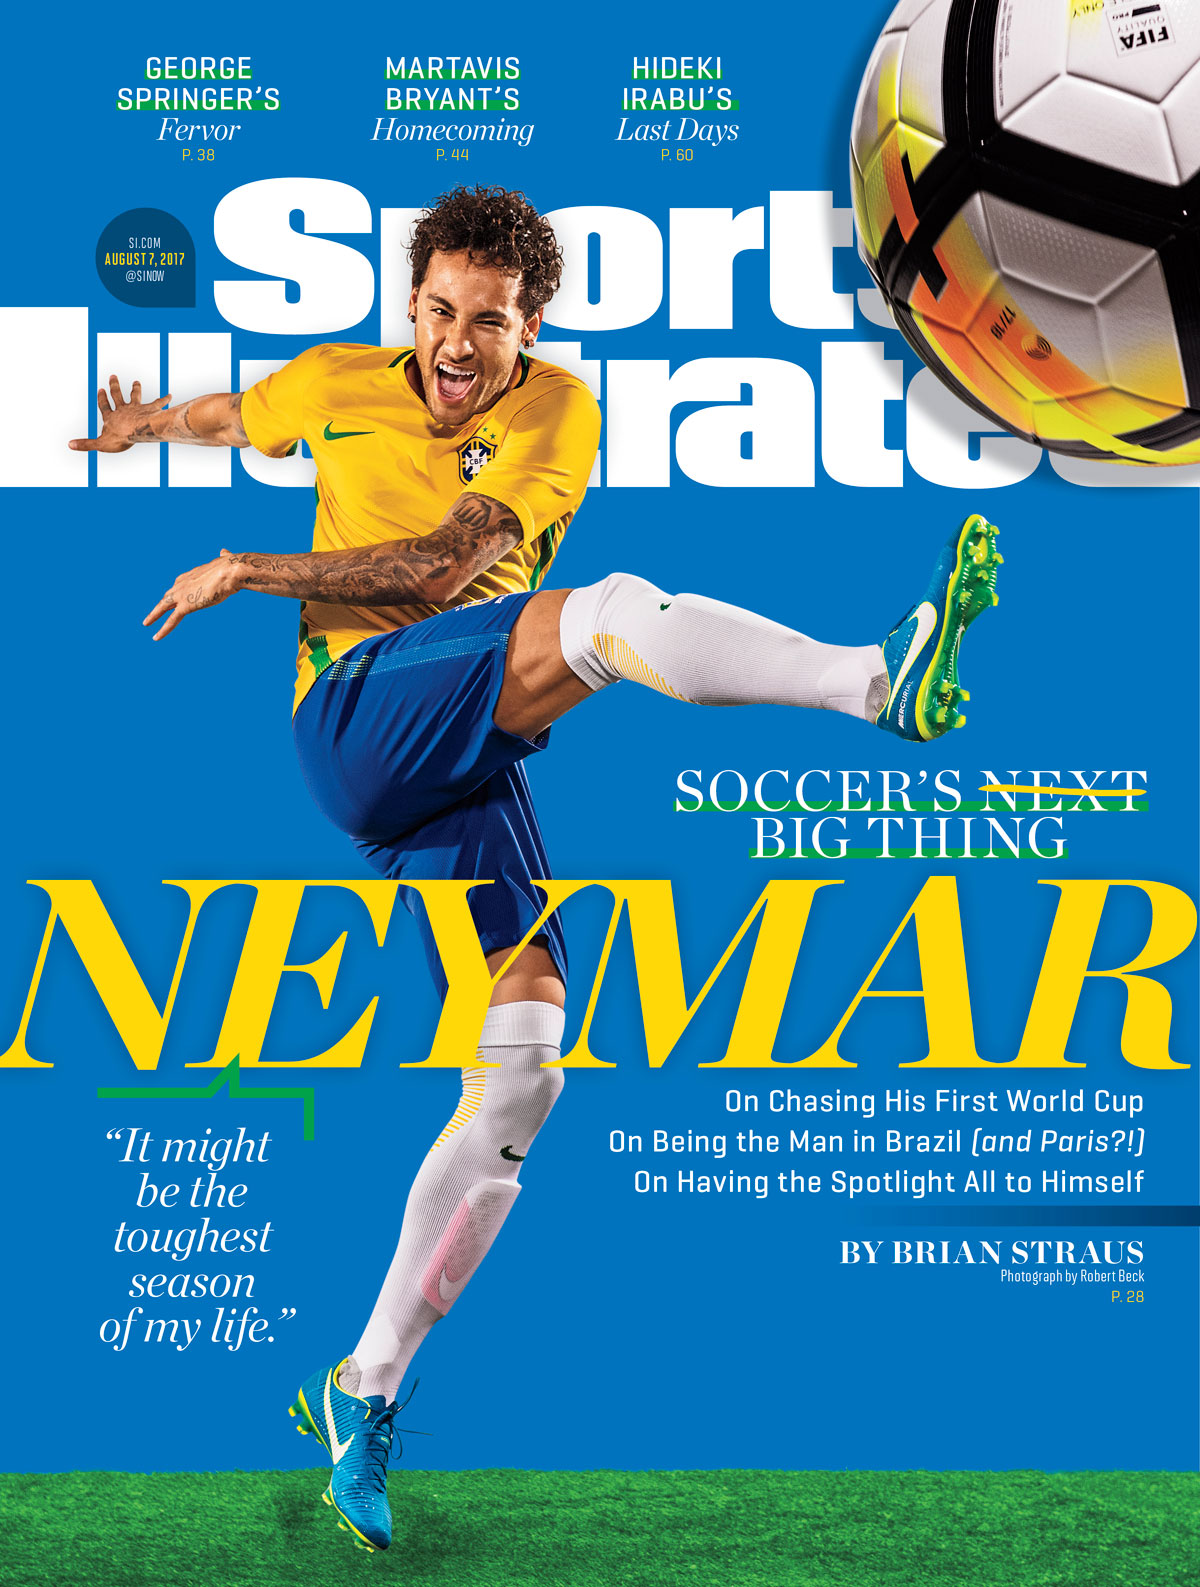 Into the Spotlight: It's Neymar's Time to Complete His Rise to Royalty